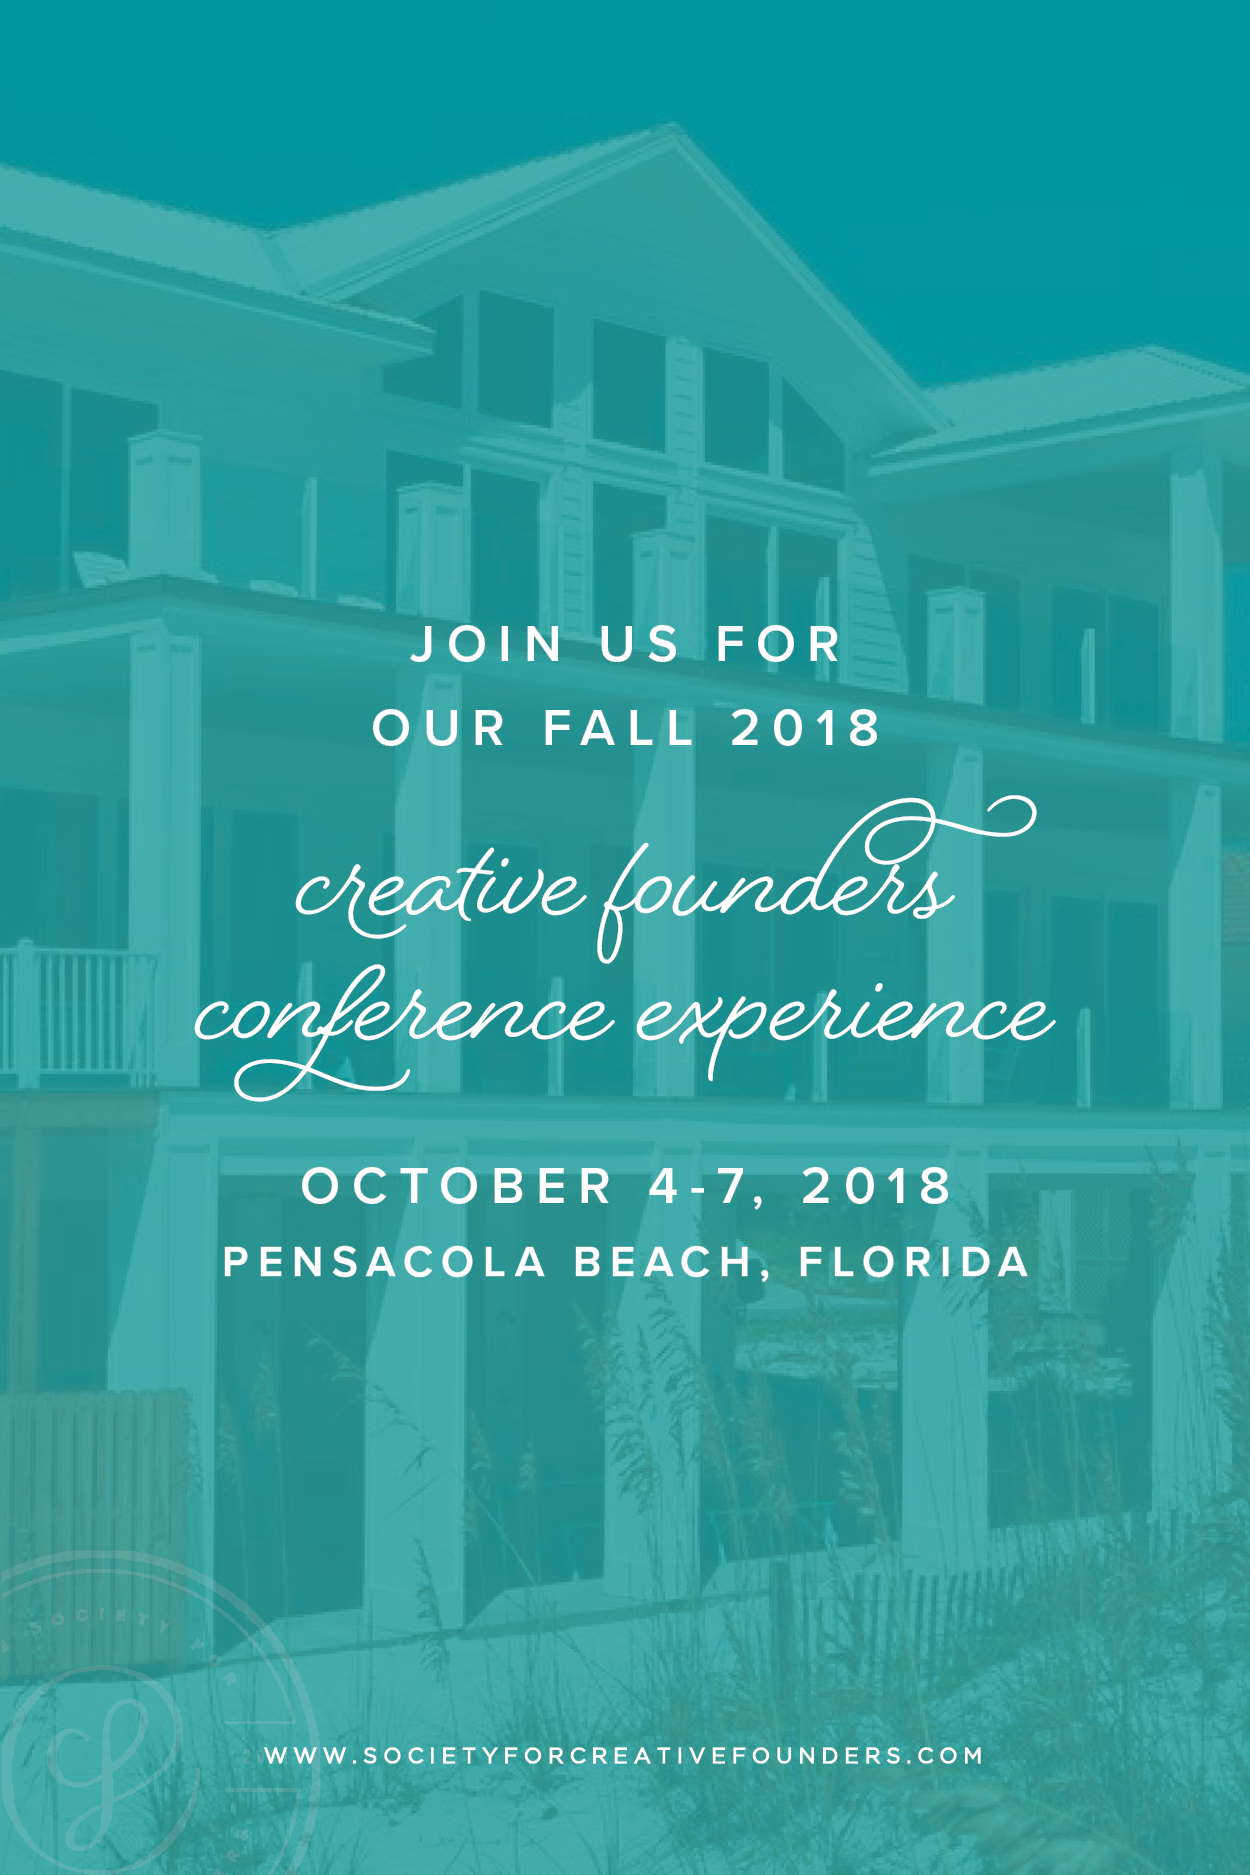 Join us for our Fall 2018 Creative Founders Conference